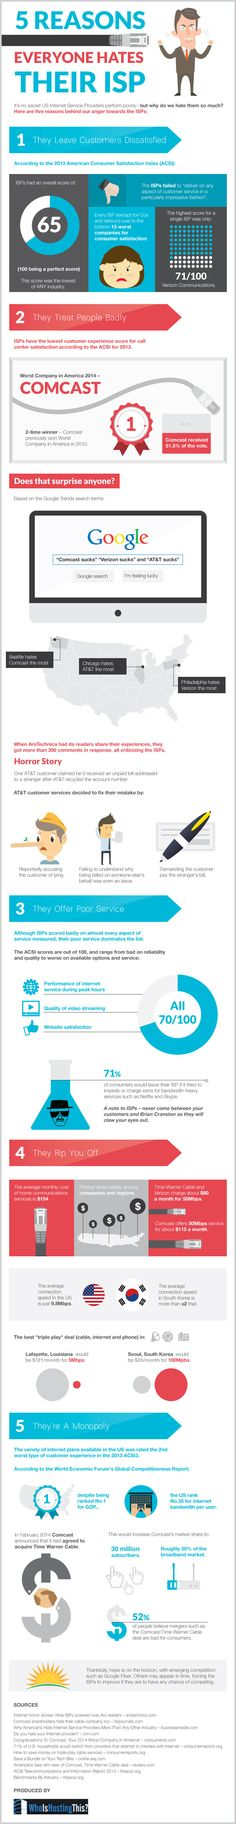 Why Americans Hate Their Internet Service Providers (Infographic)